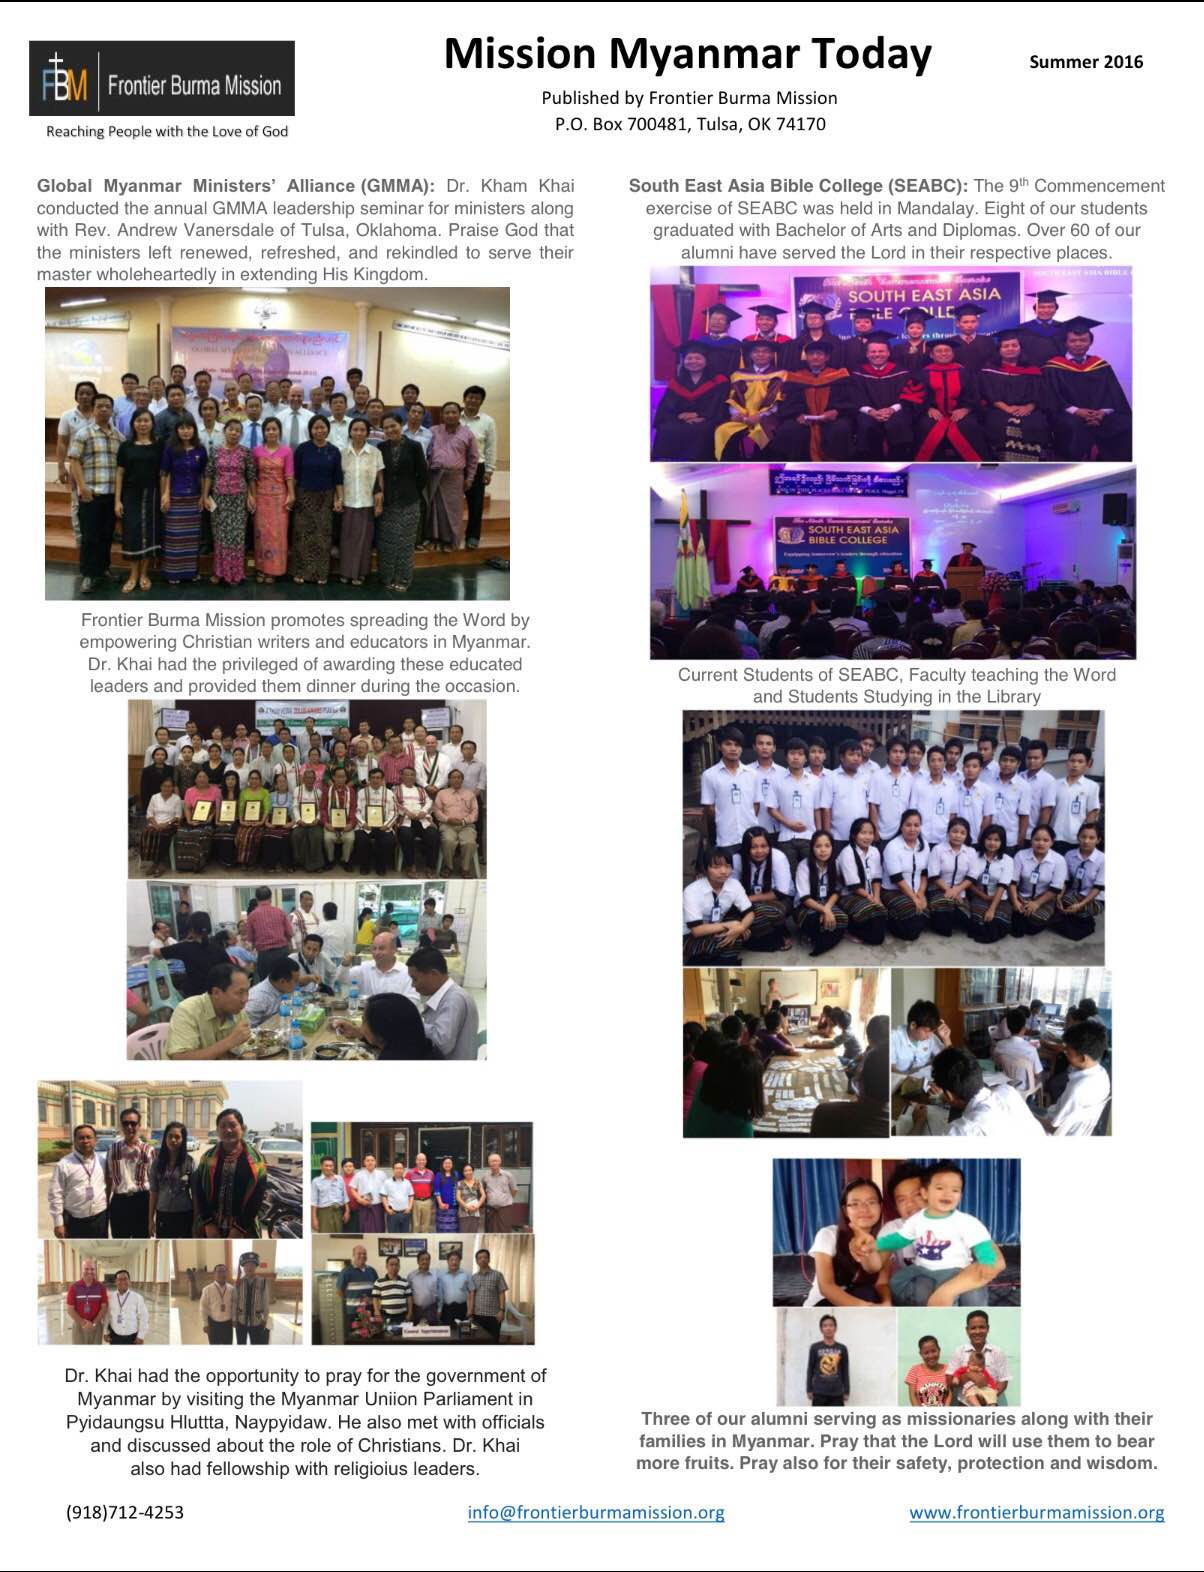 Mission Myanmar Today - Summer 2016